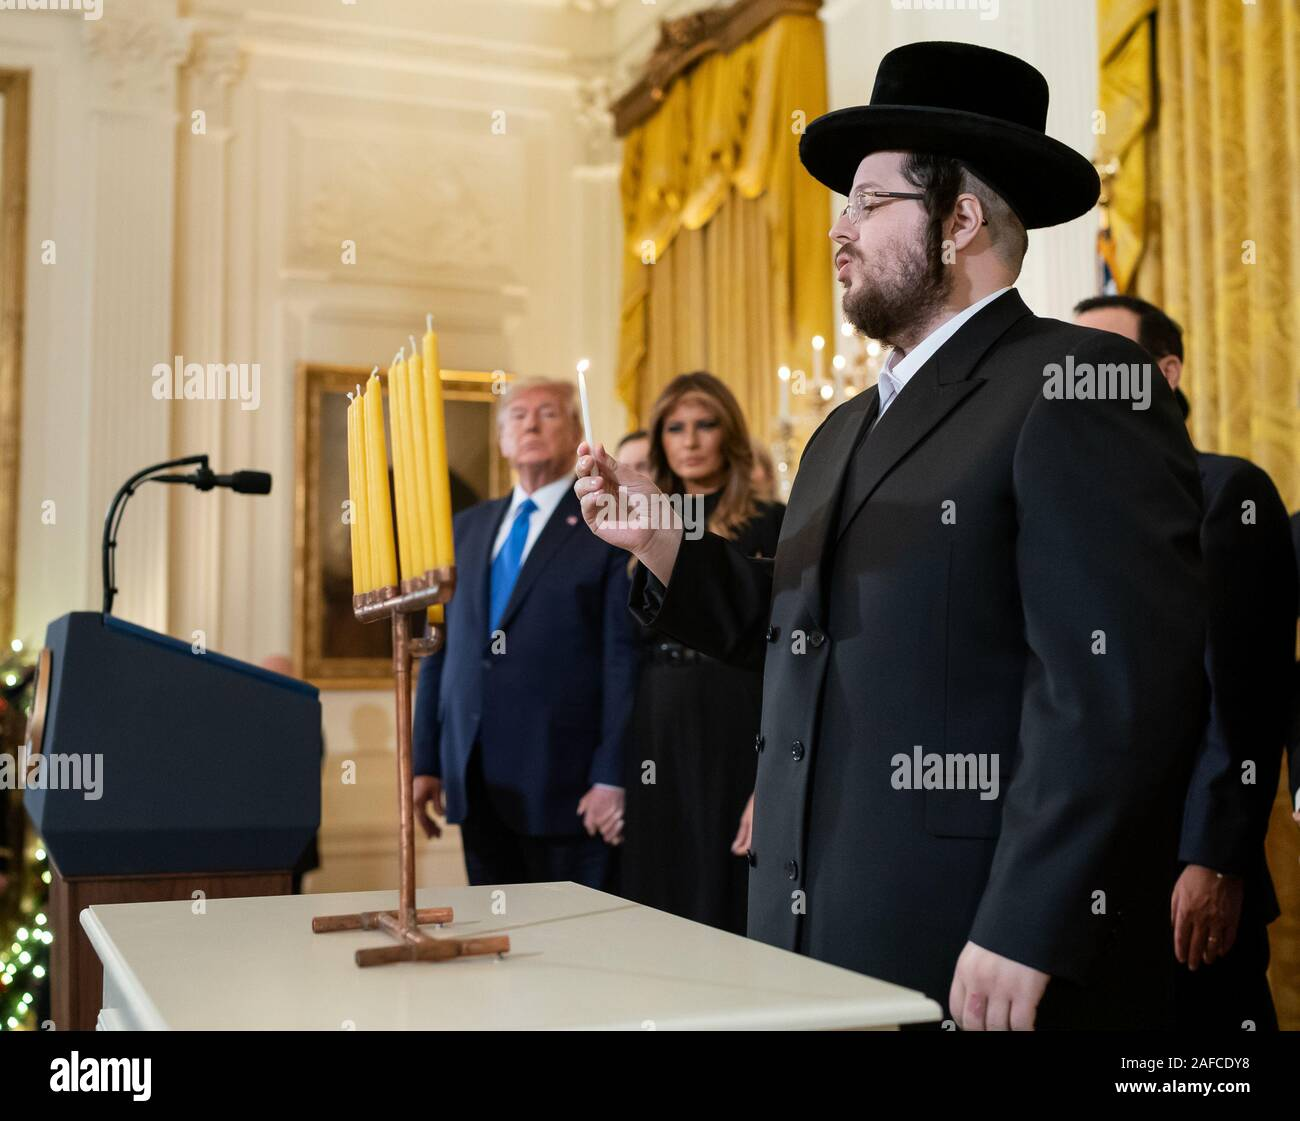 Washington, United States Of America. 11th Dec, 2019. President Donald J. Trump and First Lady Melania Trump look on as Rabbi Moshe Moskowitz lights the Menorah during a Hanukkah Reception Wednesday, Dec. 11, 2019, in the East Room of the White House People: President Donald J. Trump, Rabbi Moshe Moskowitz Credit: Storms Media Group/Alamy Live News Stock Photo